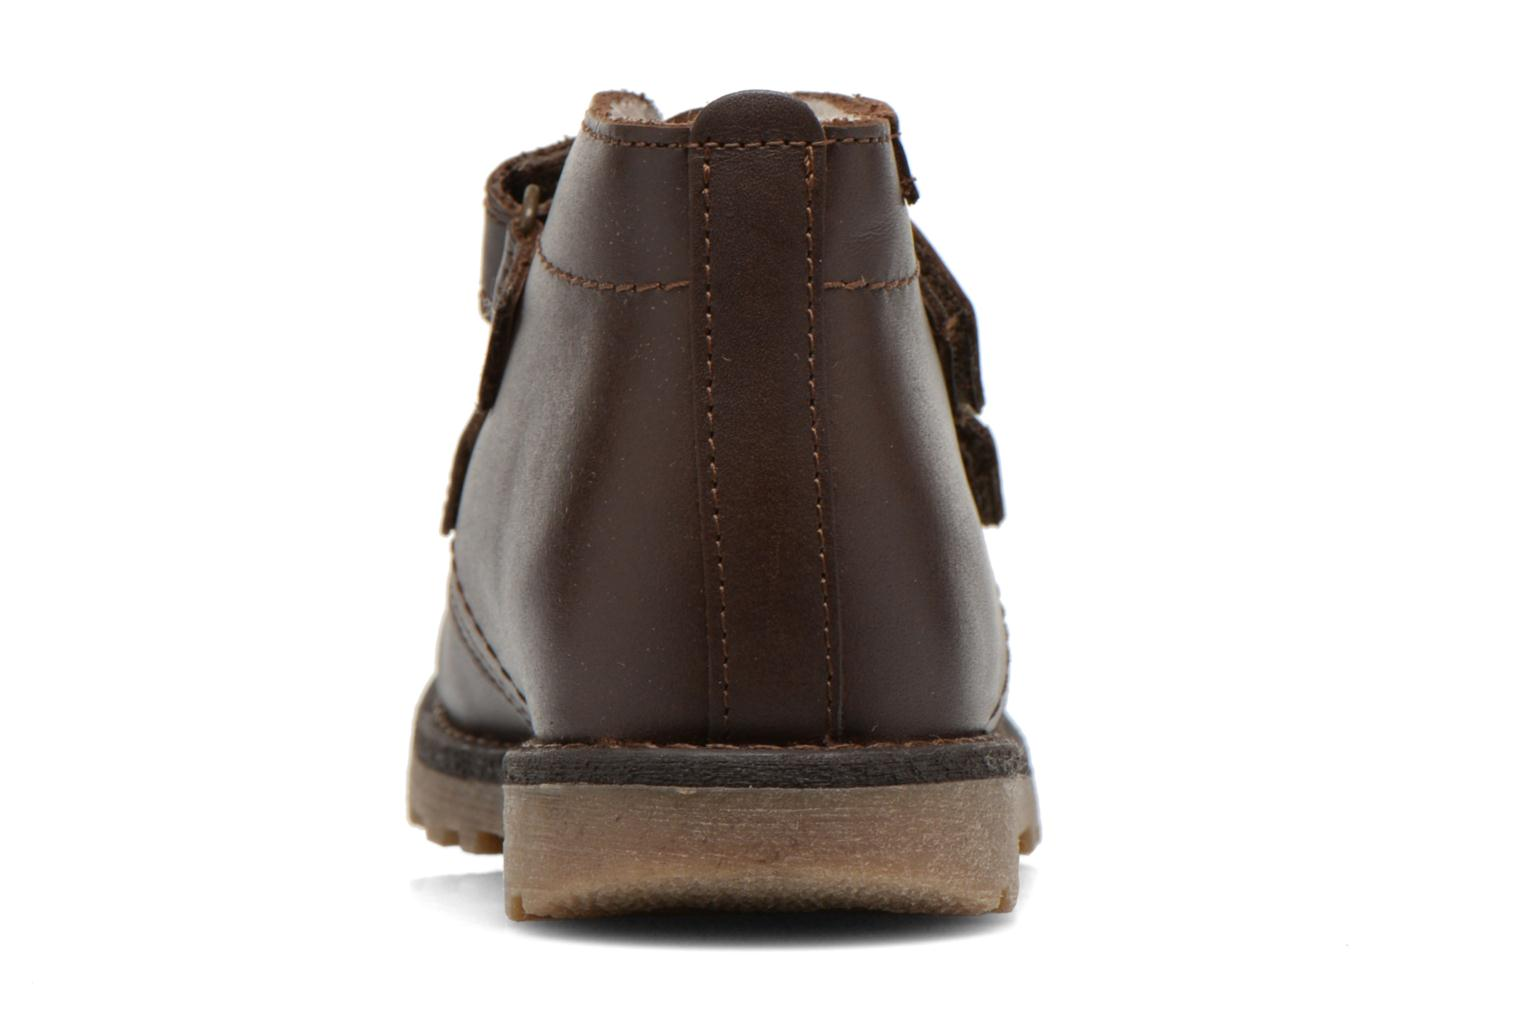 Dixon M Kid Fur Dark Brown LTR